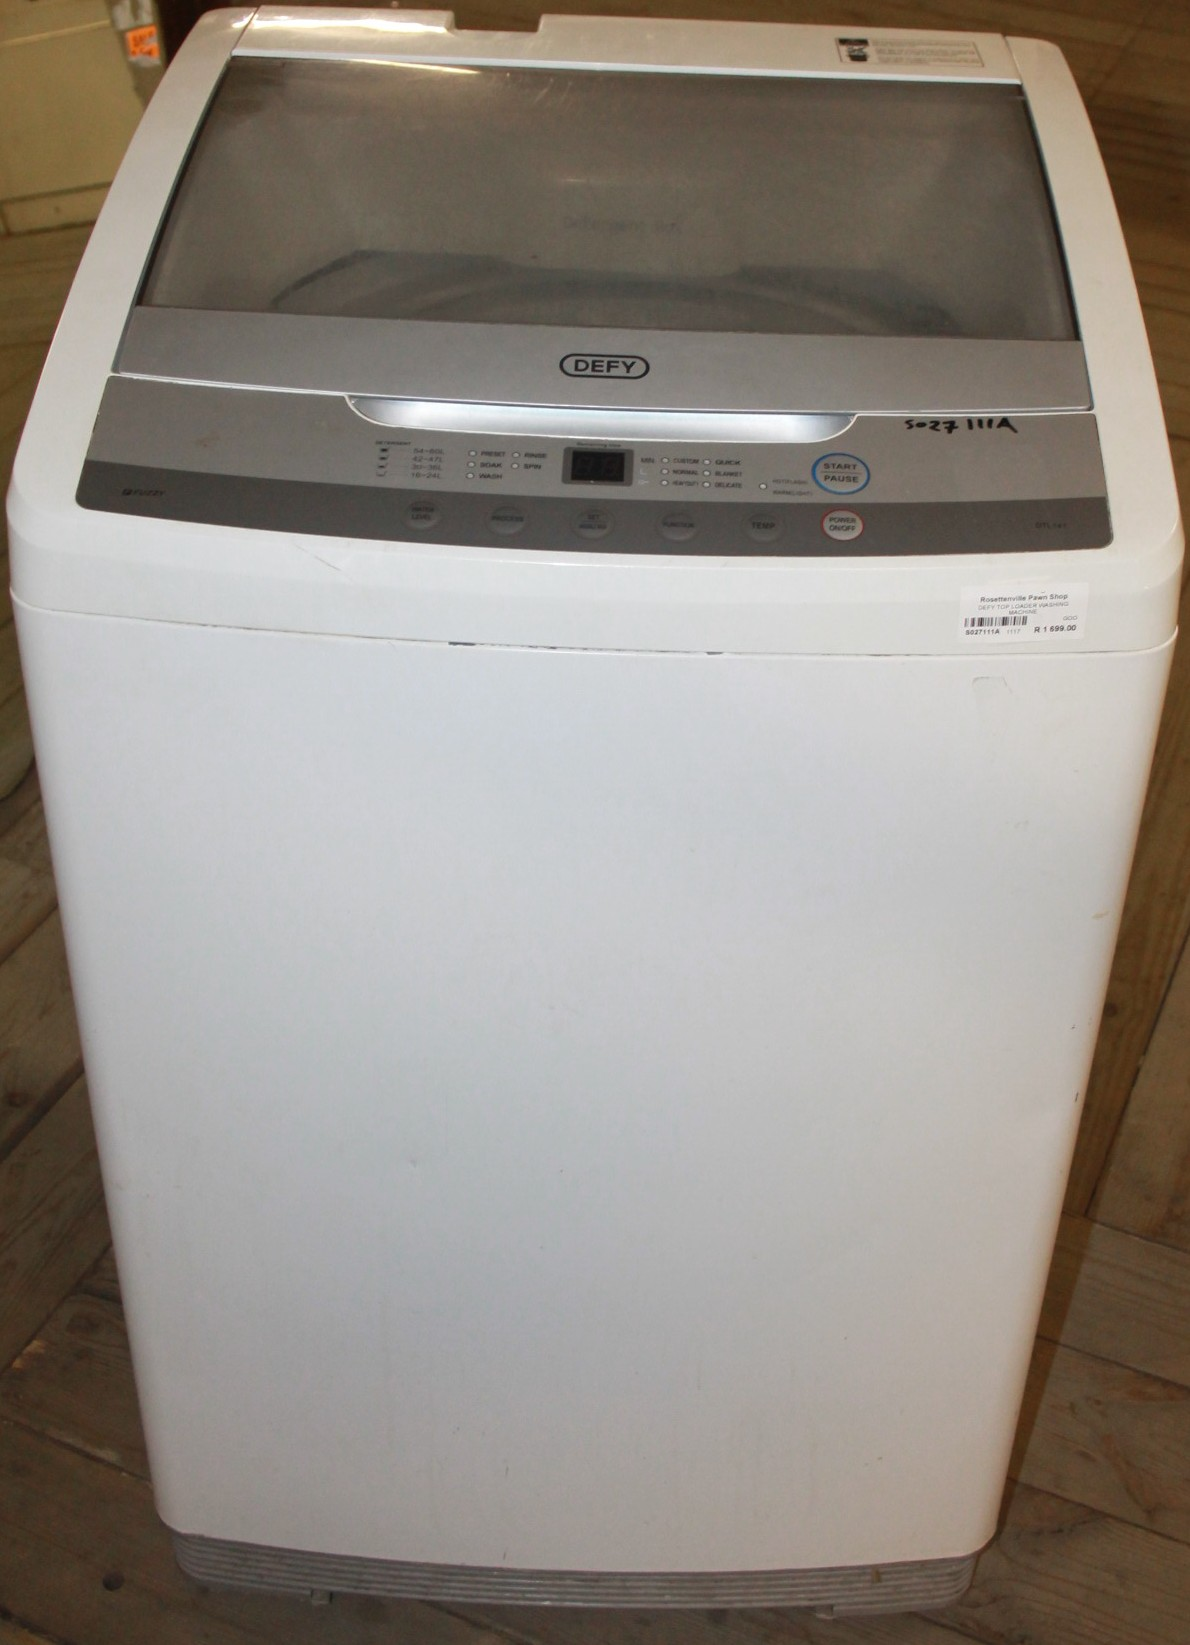 Washing machine S027111a #Rosettenvillepawnshop